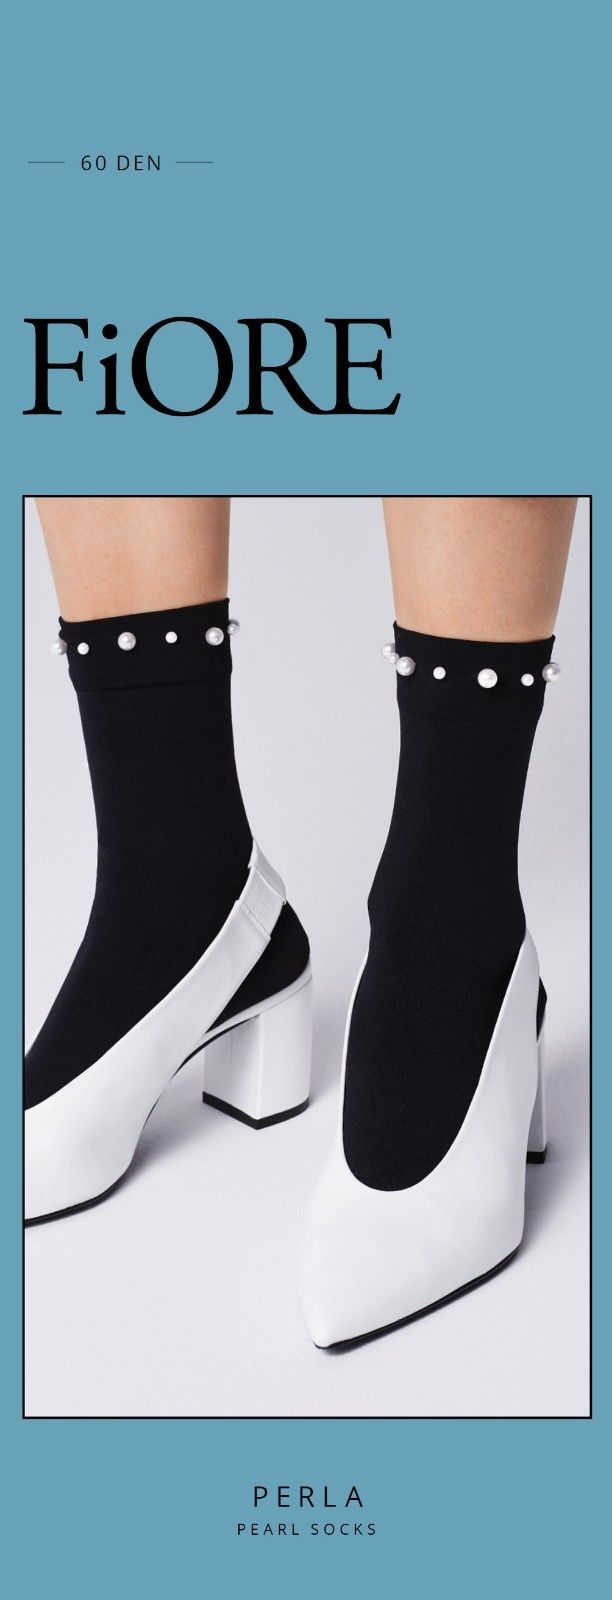 FiORE Perla Short Ankle High Socks 60 Denier Black with Faux Pearl Embellishment